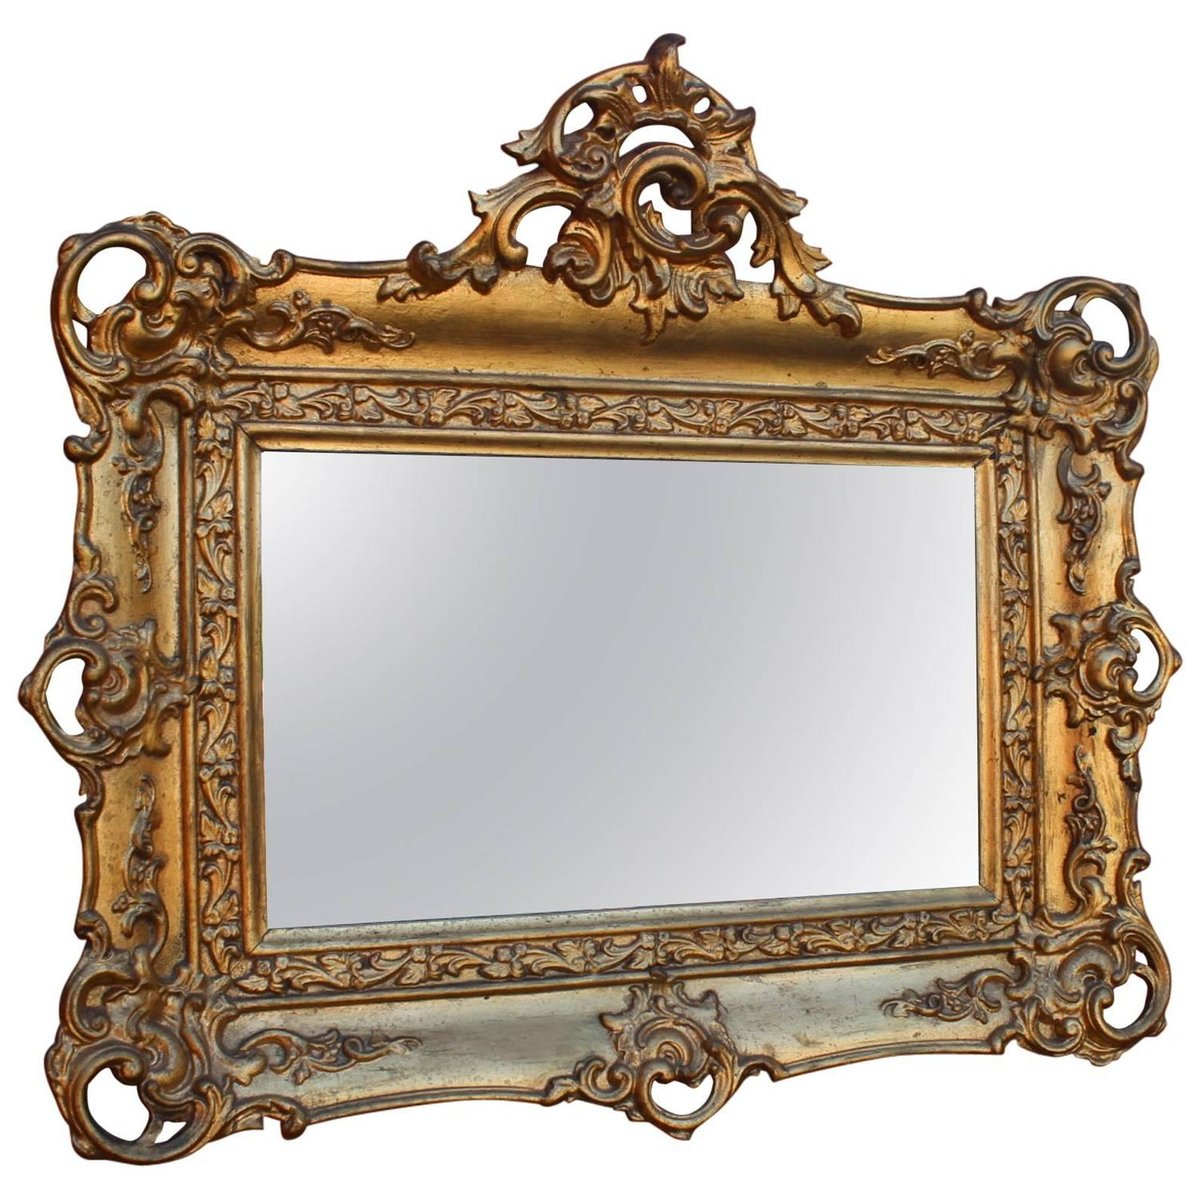 Antique gold leaf frame mirror 1820s for sale at pamono for Mirror frame